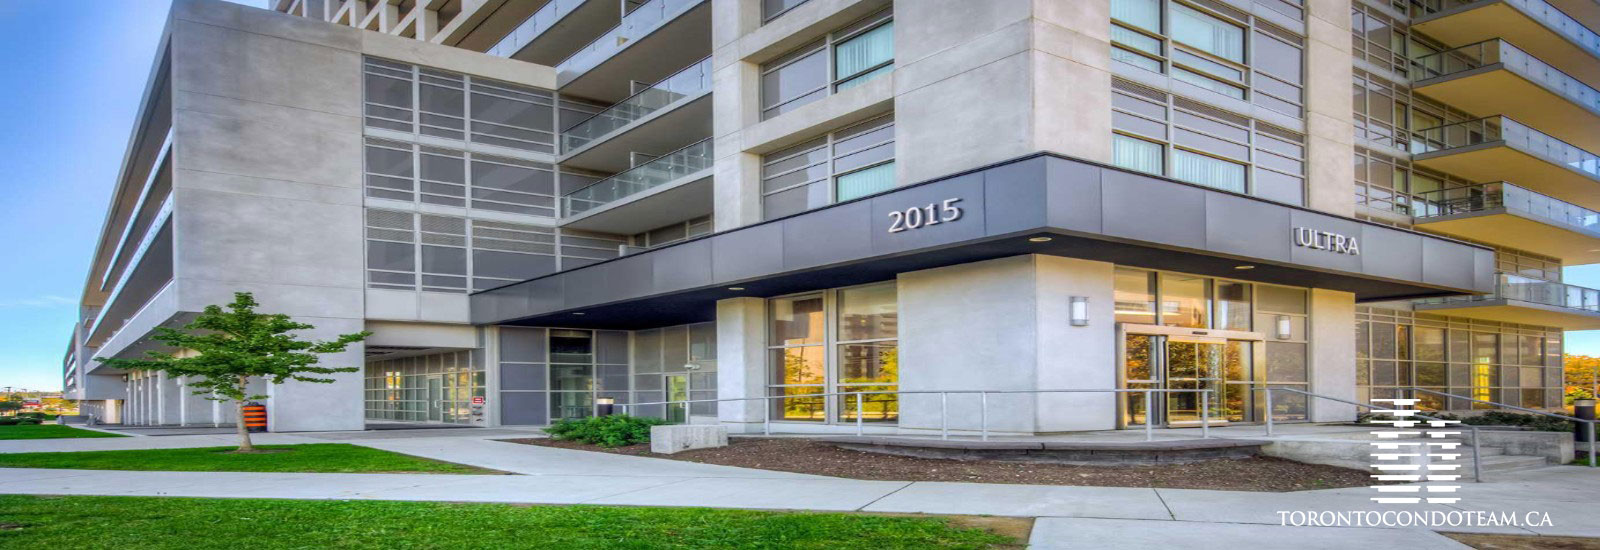 2015 Sheppard Avenue East Condos For Sale